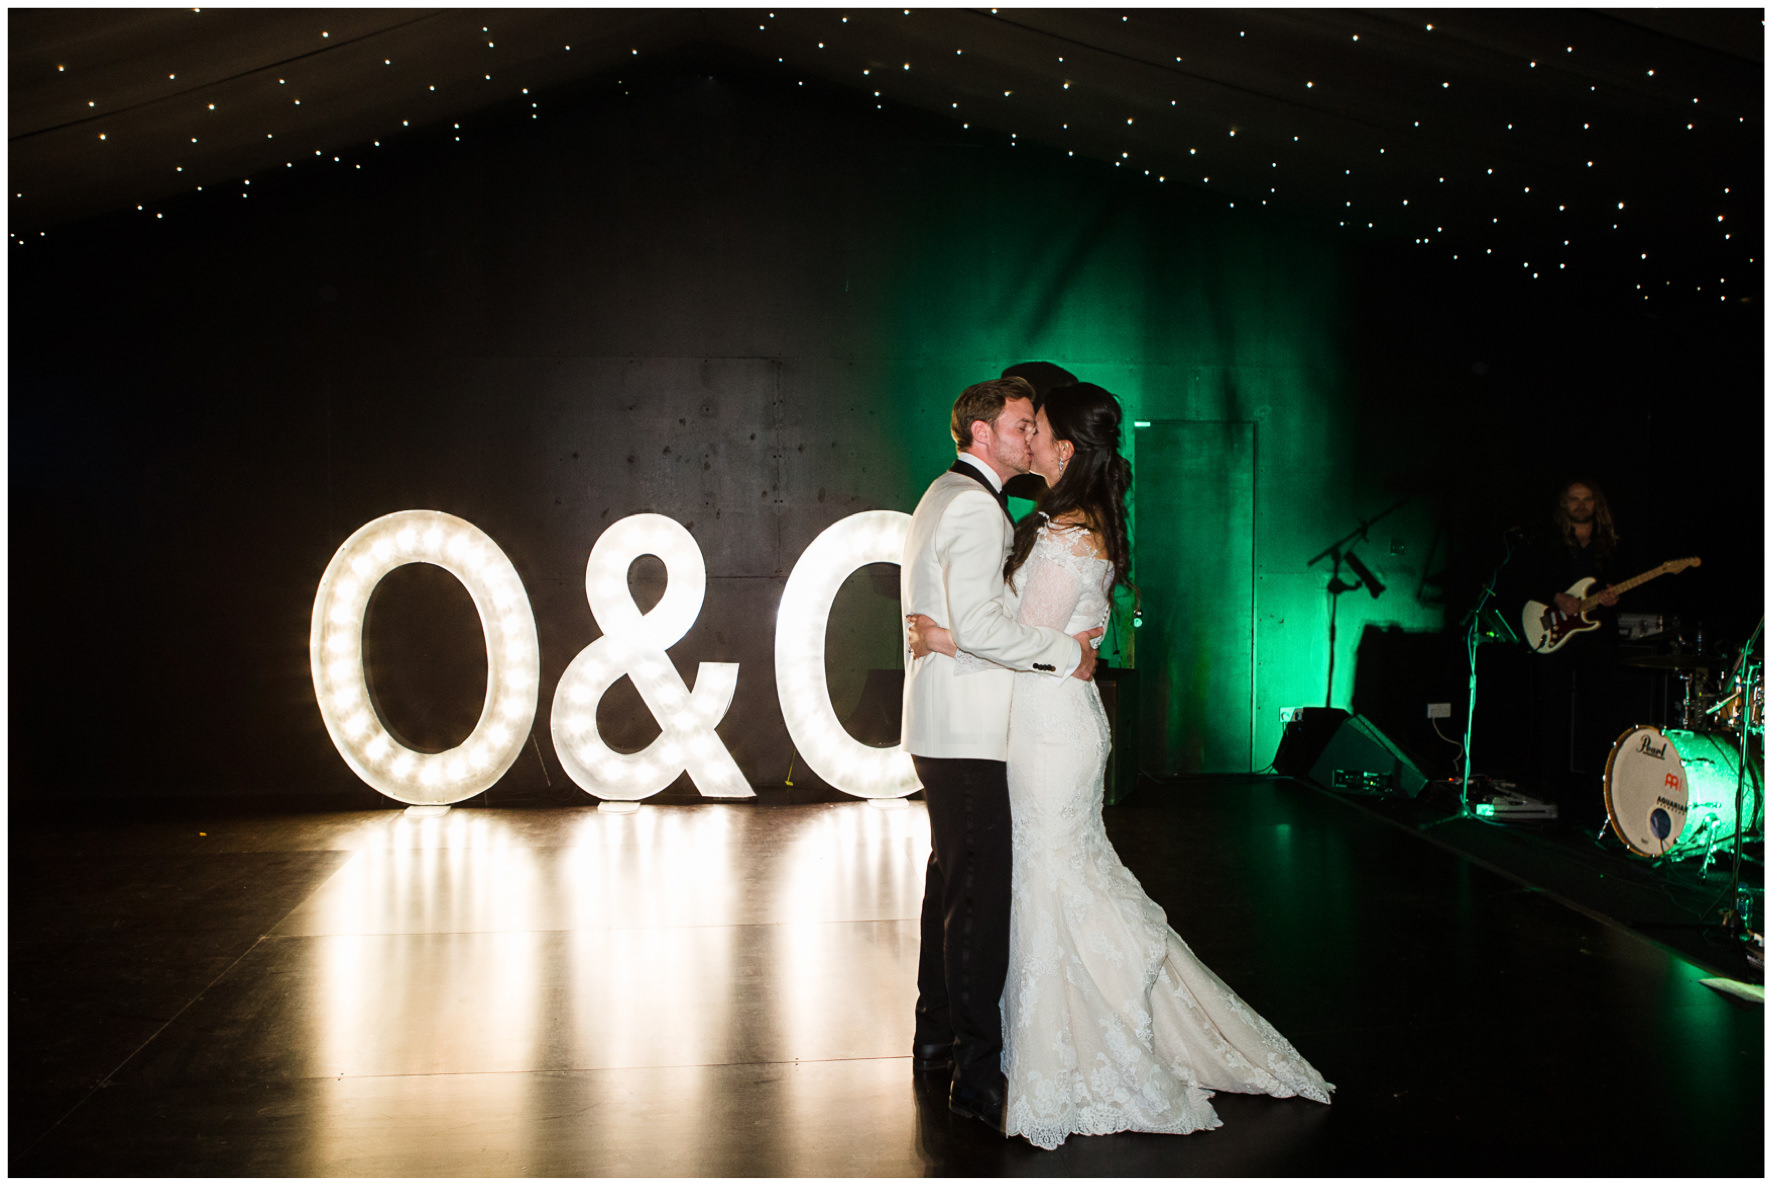 Lucy Davenport Photography, Katrina Otter Weddings, Chippenham Park, first dance